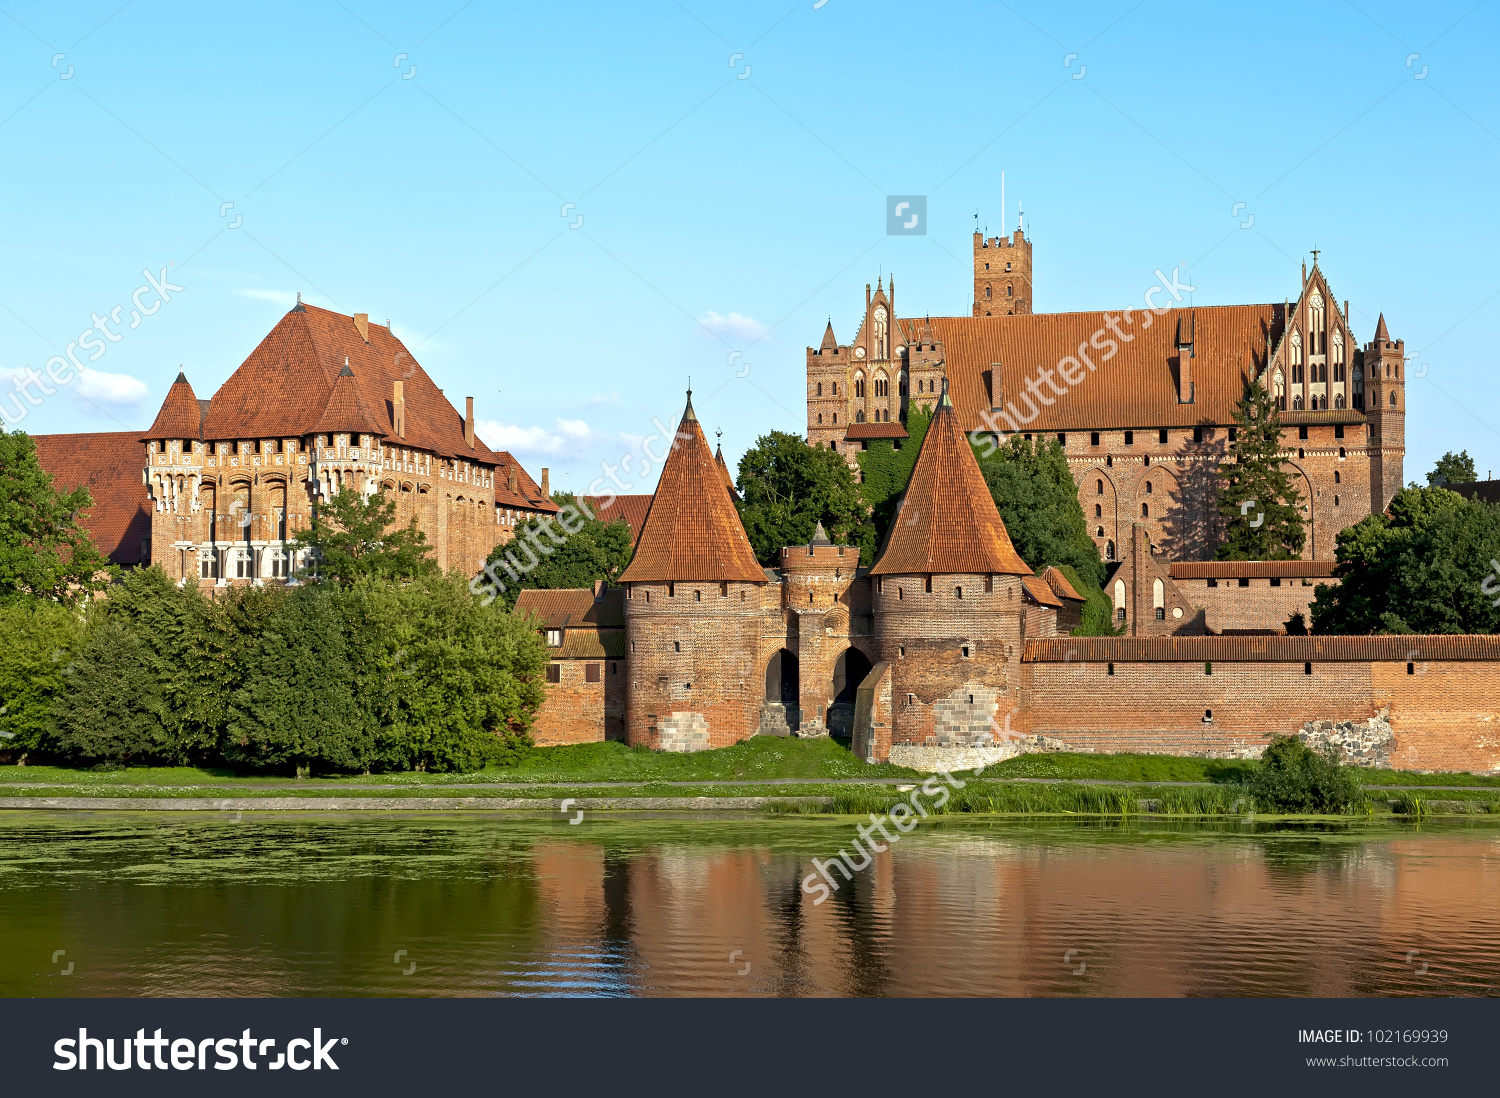 Teutonic Knights Fortress Malbork Poland Stock Photo 102169939.